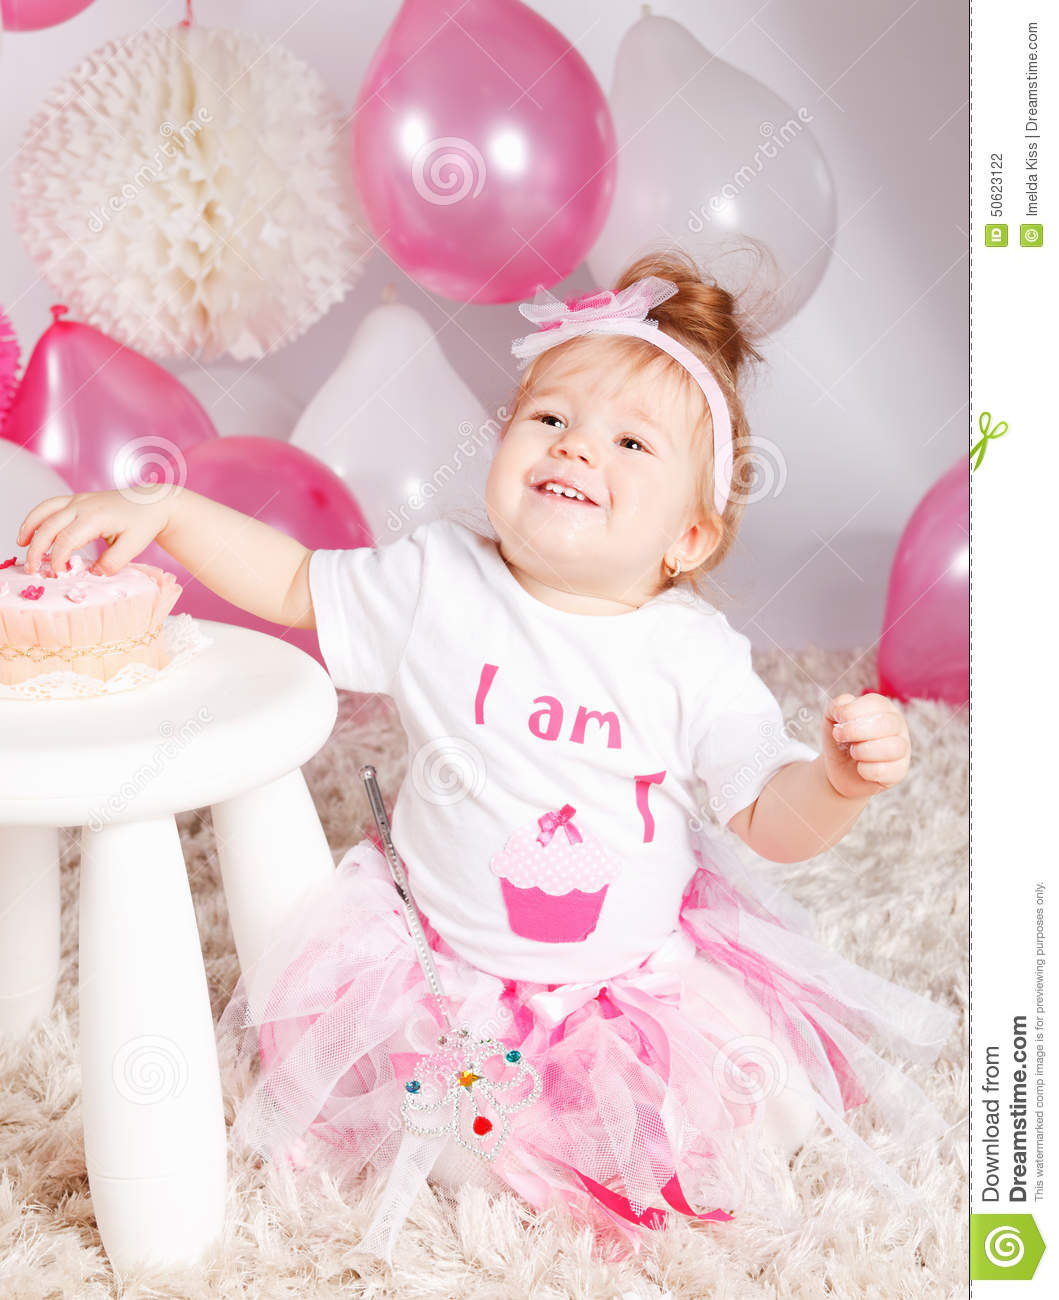 Cute baby with birthday cake